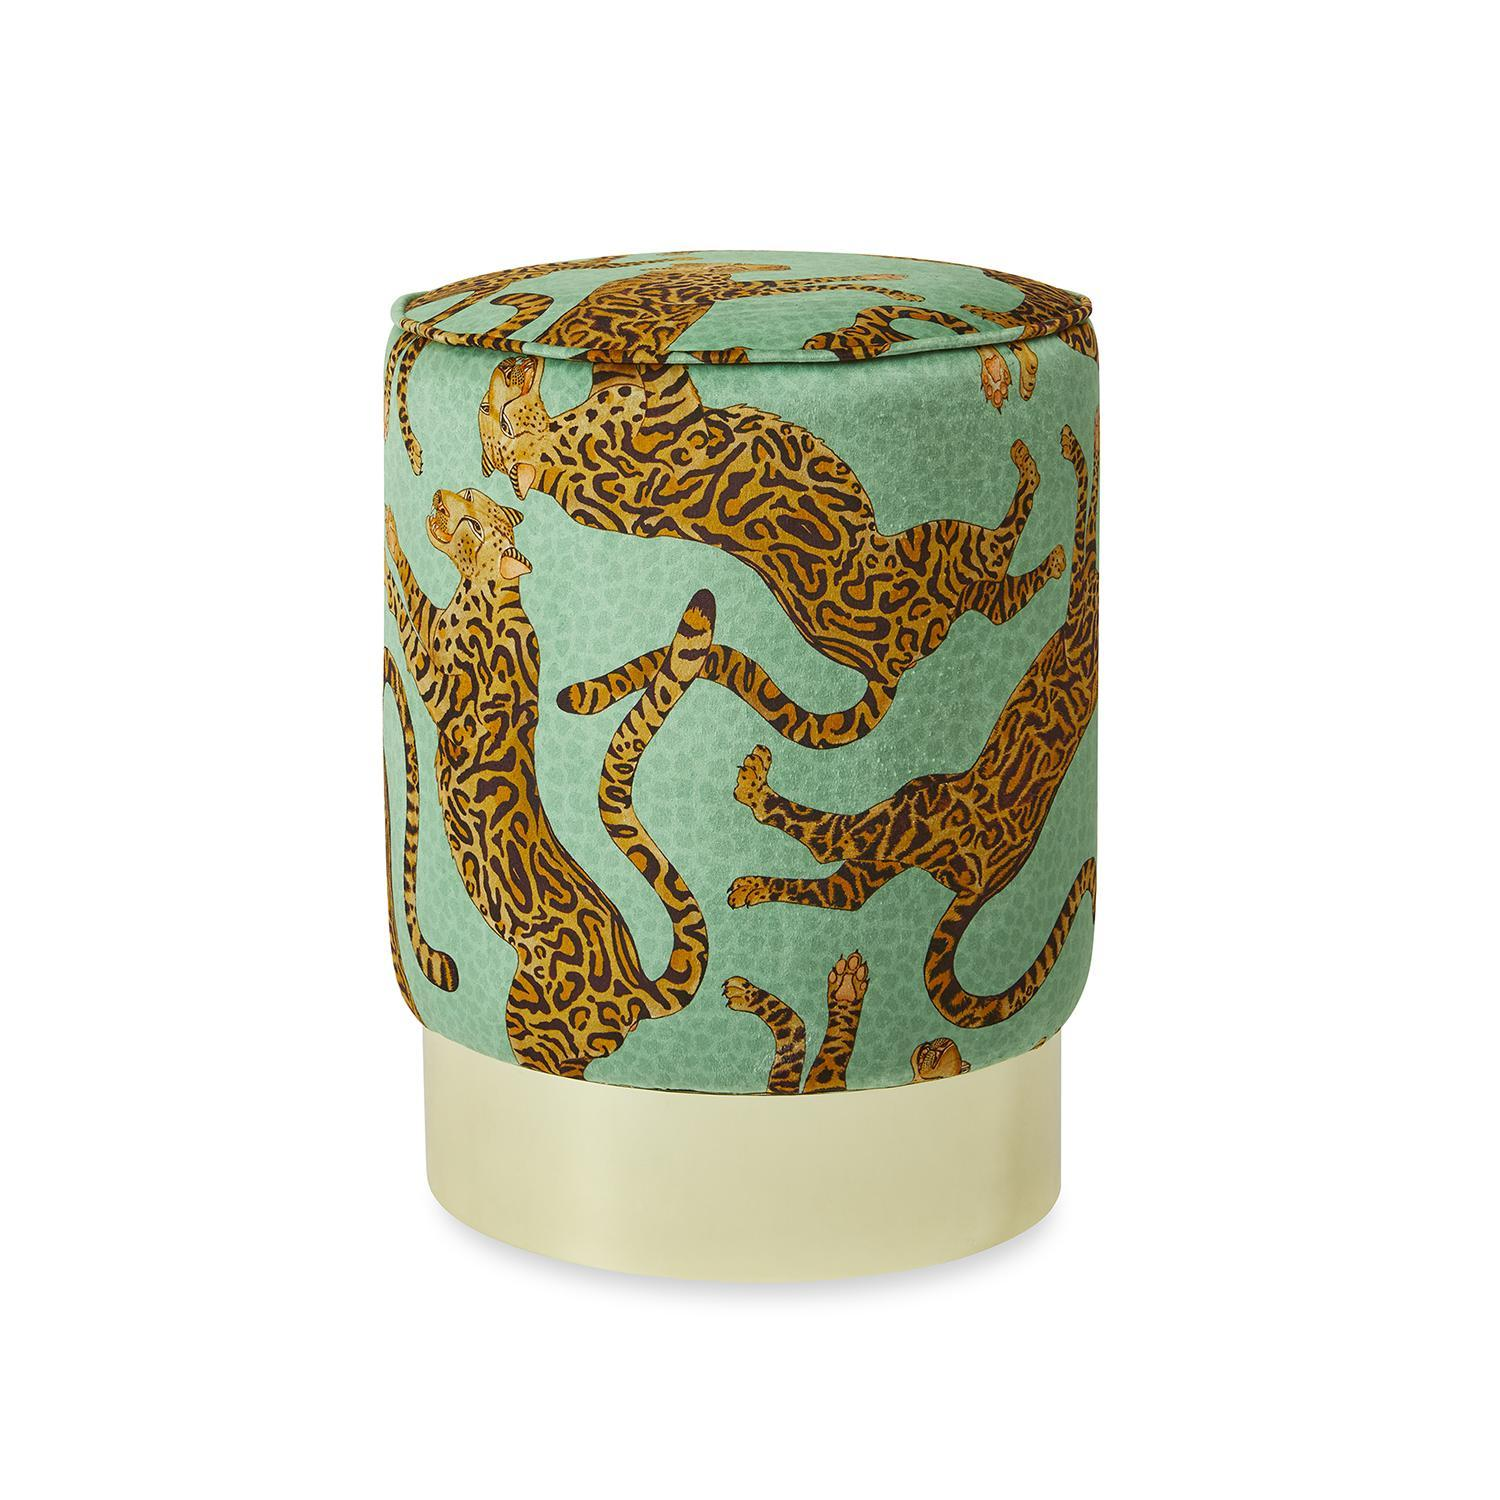 Cheetah Kings Velvet Pouf on Gold Base - Jade